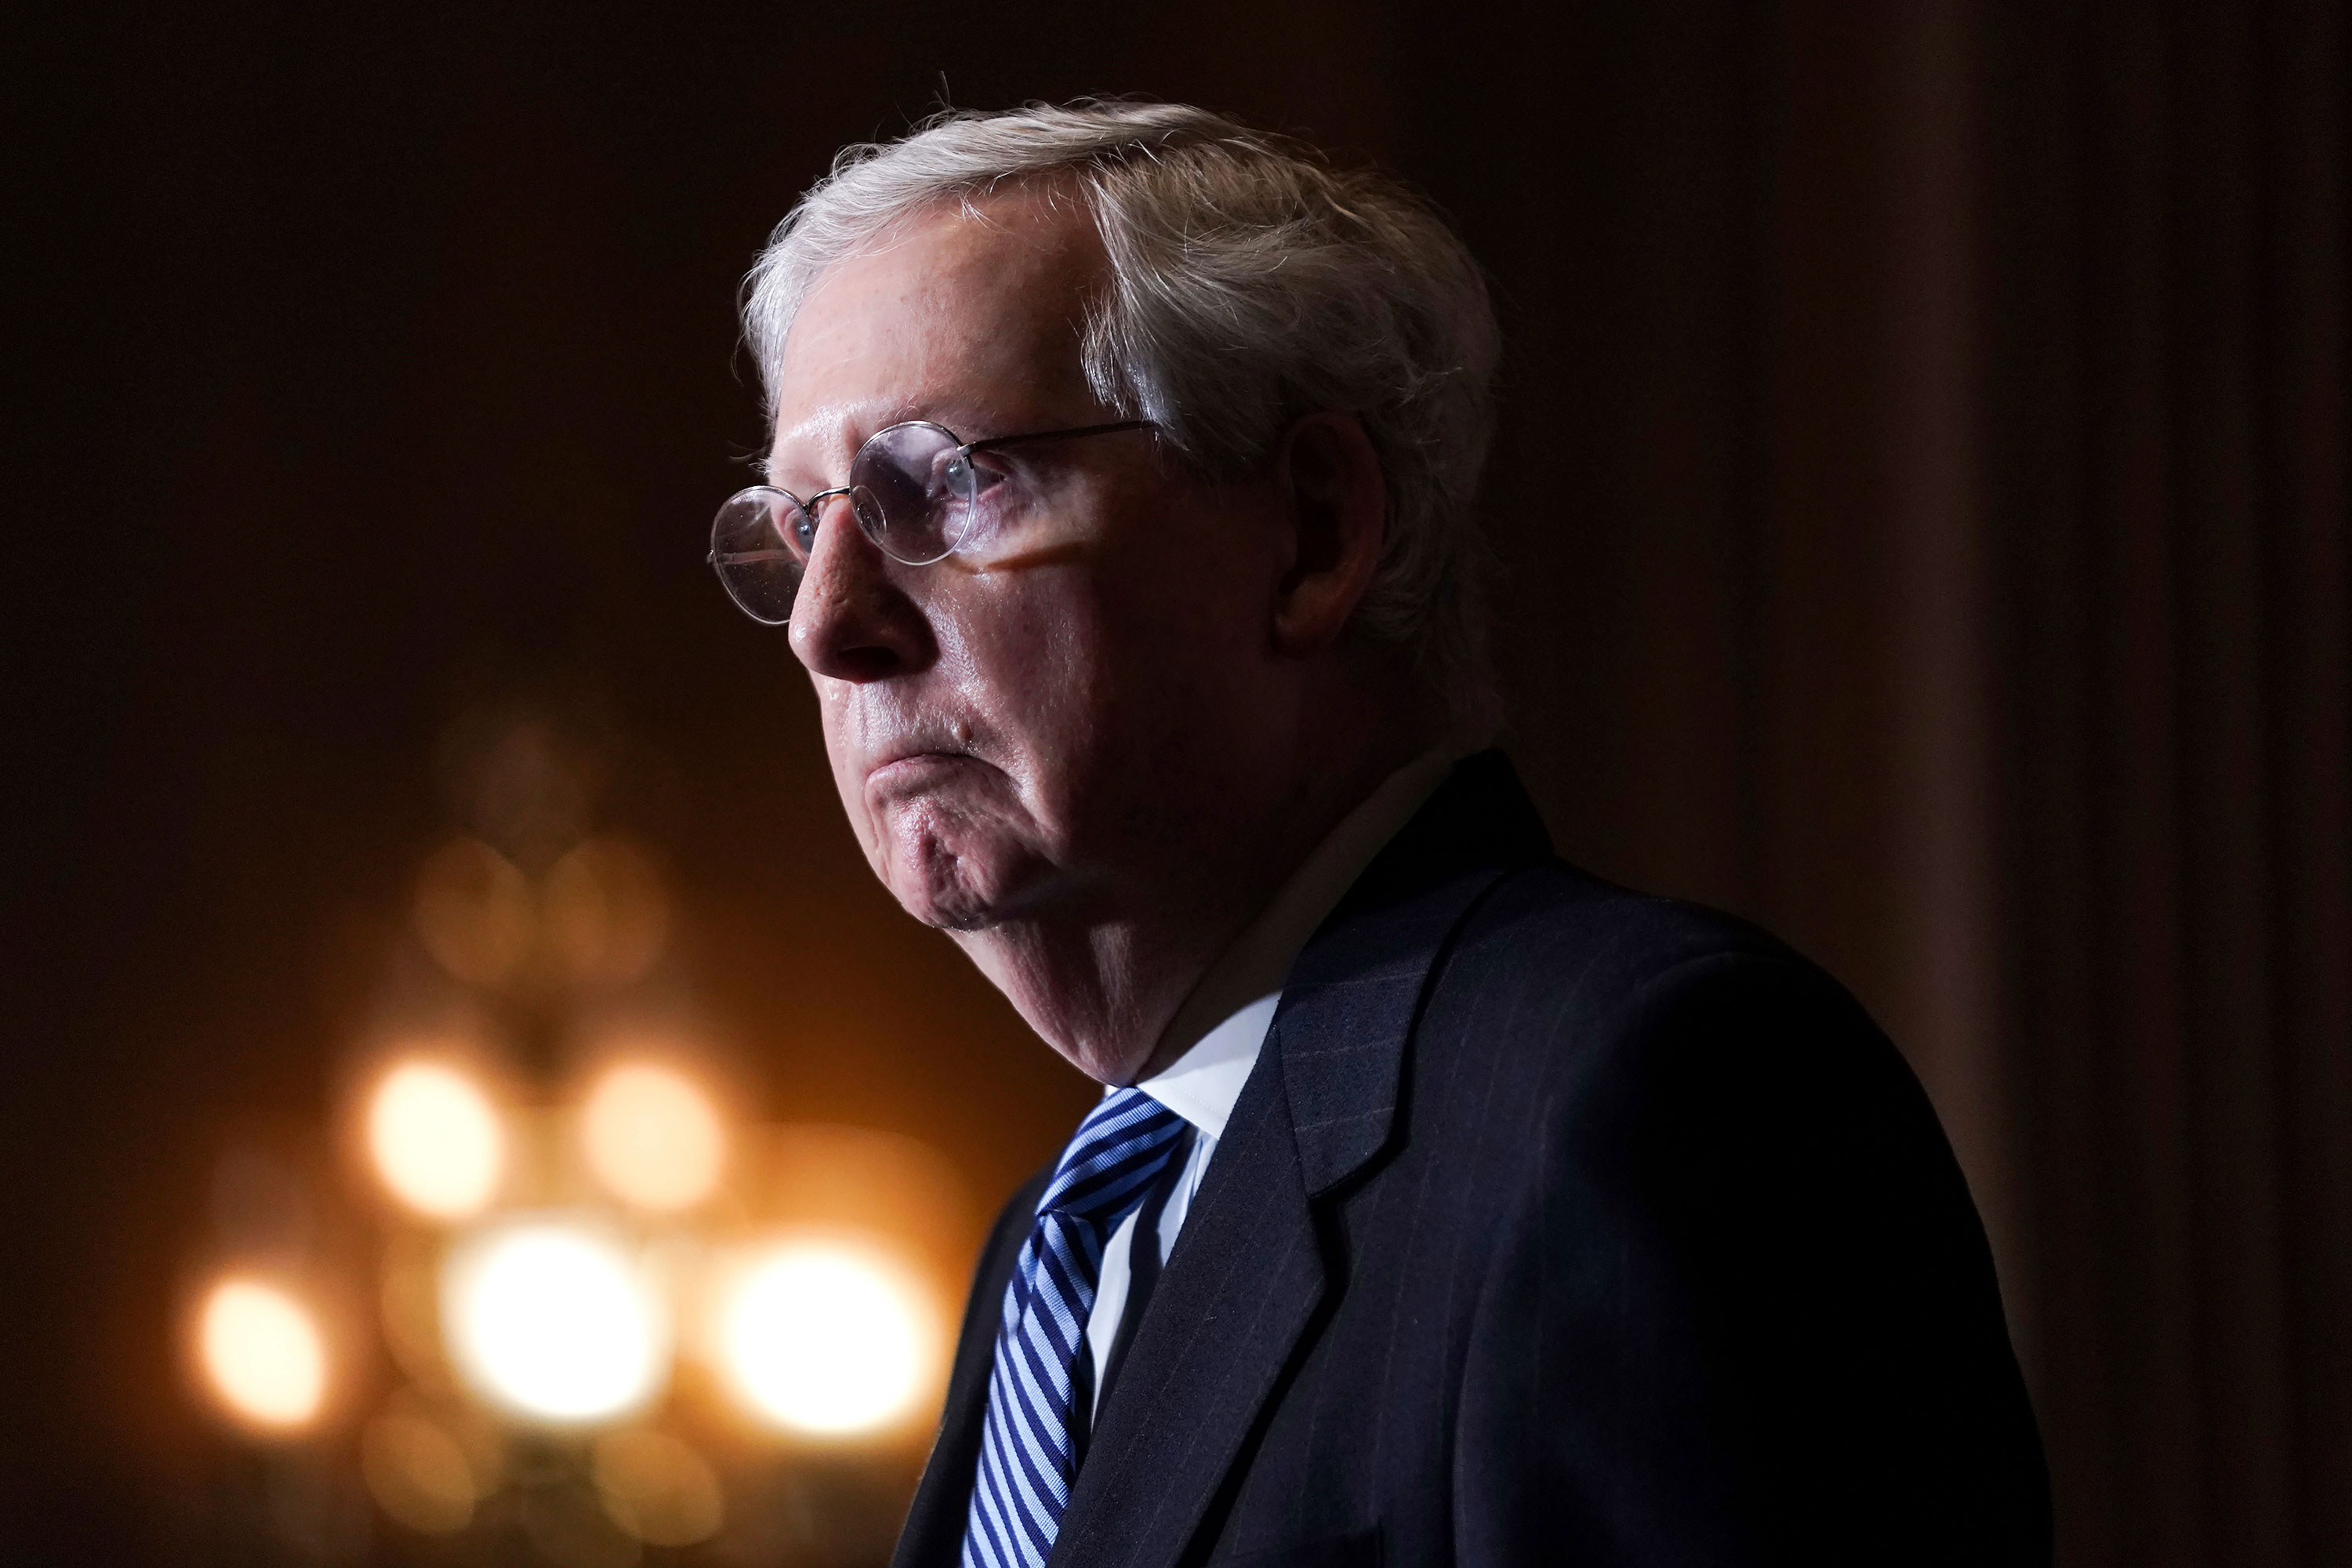 Senate Majority Leader Mitch McConnell talks during a news conference on December 8 on Capitol Hill in Washington, DC.